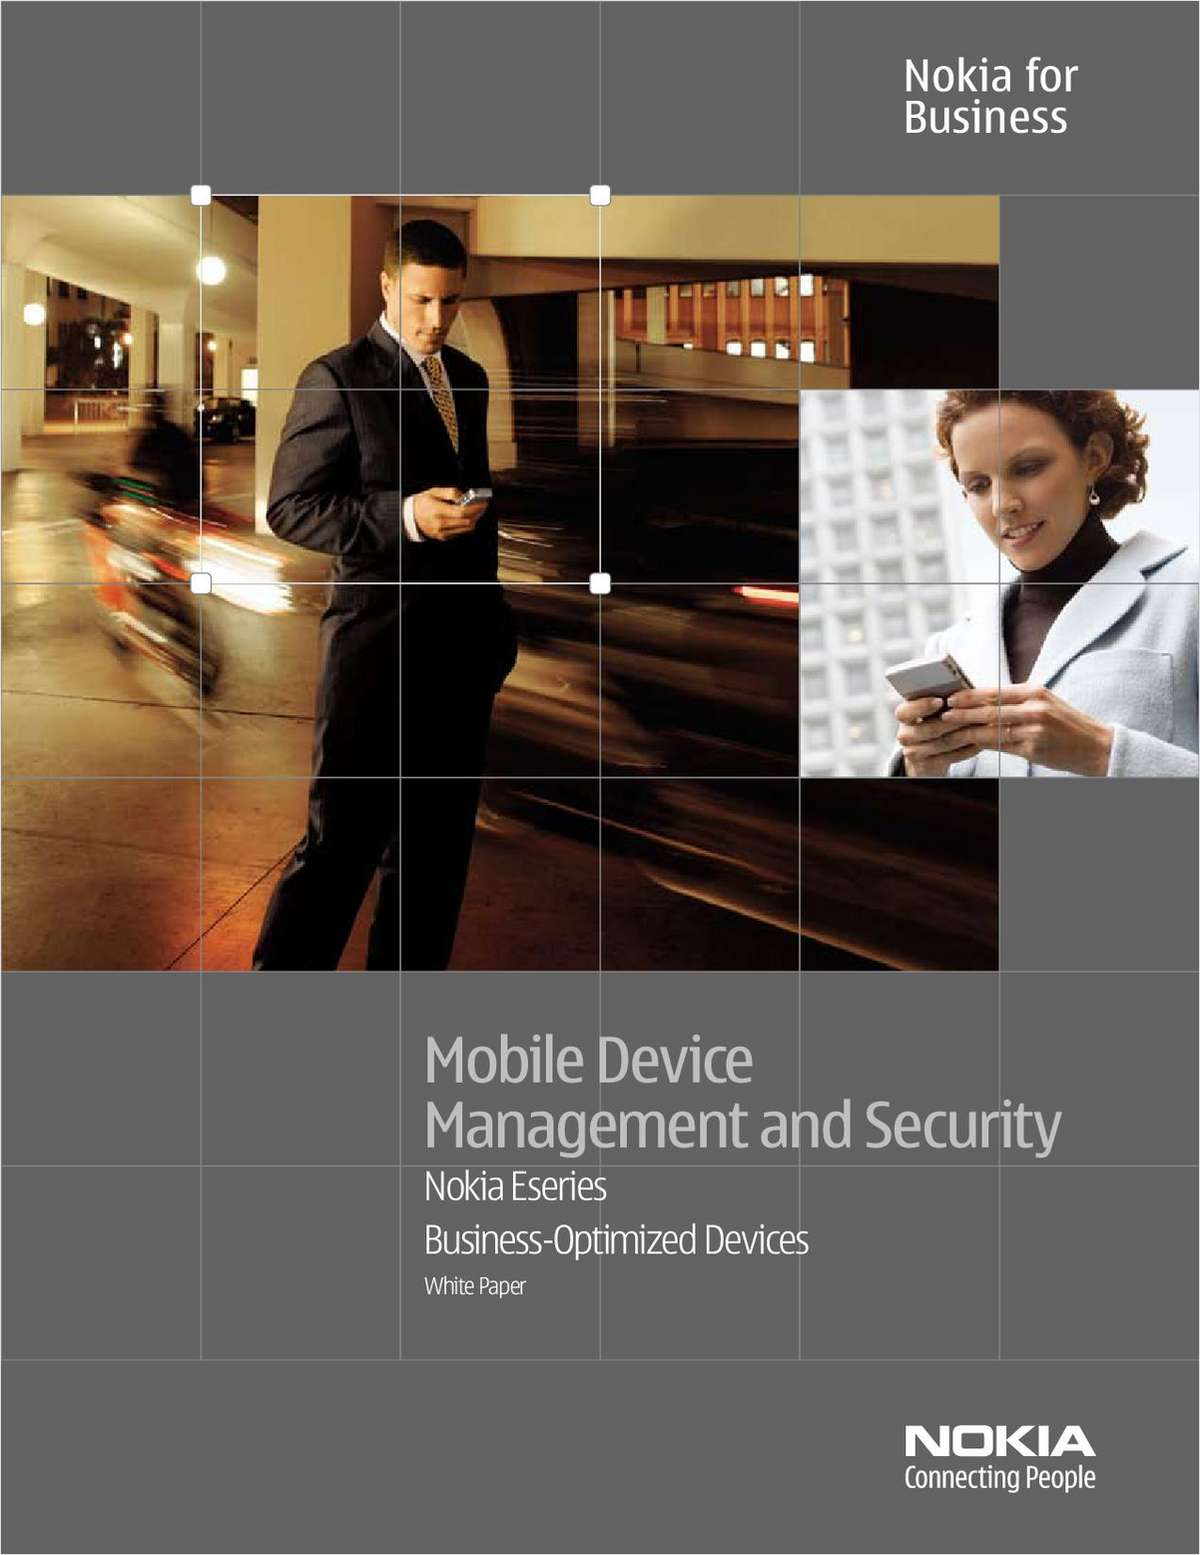 Mobile Device Management and Security